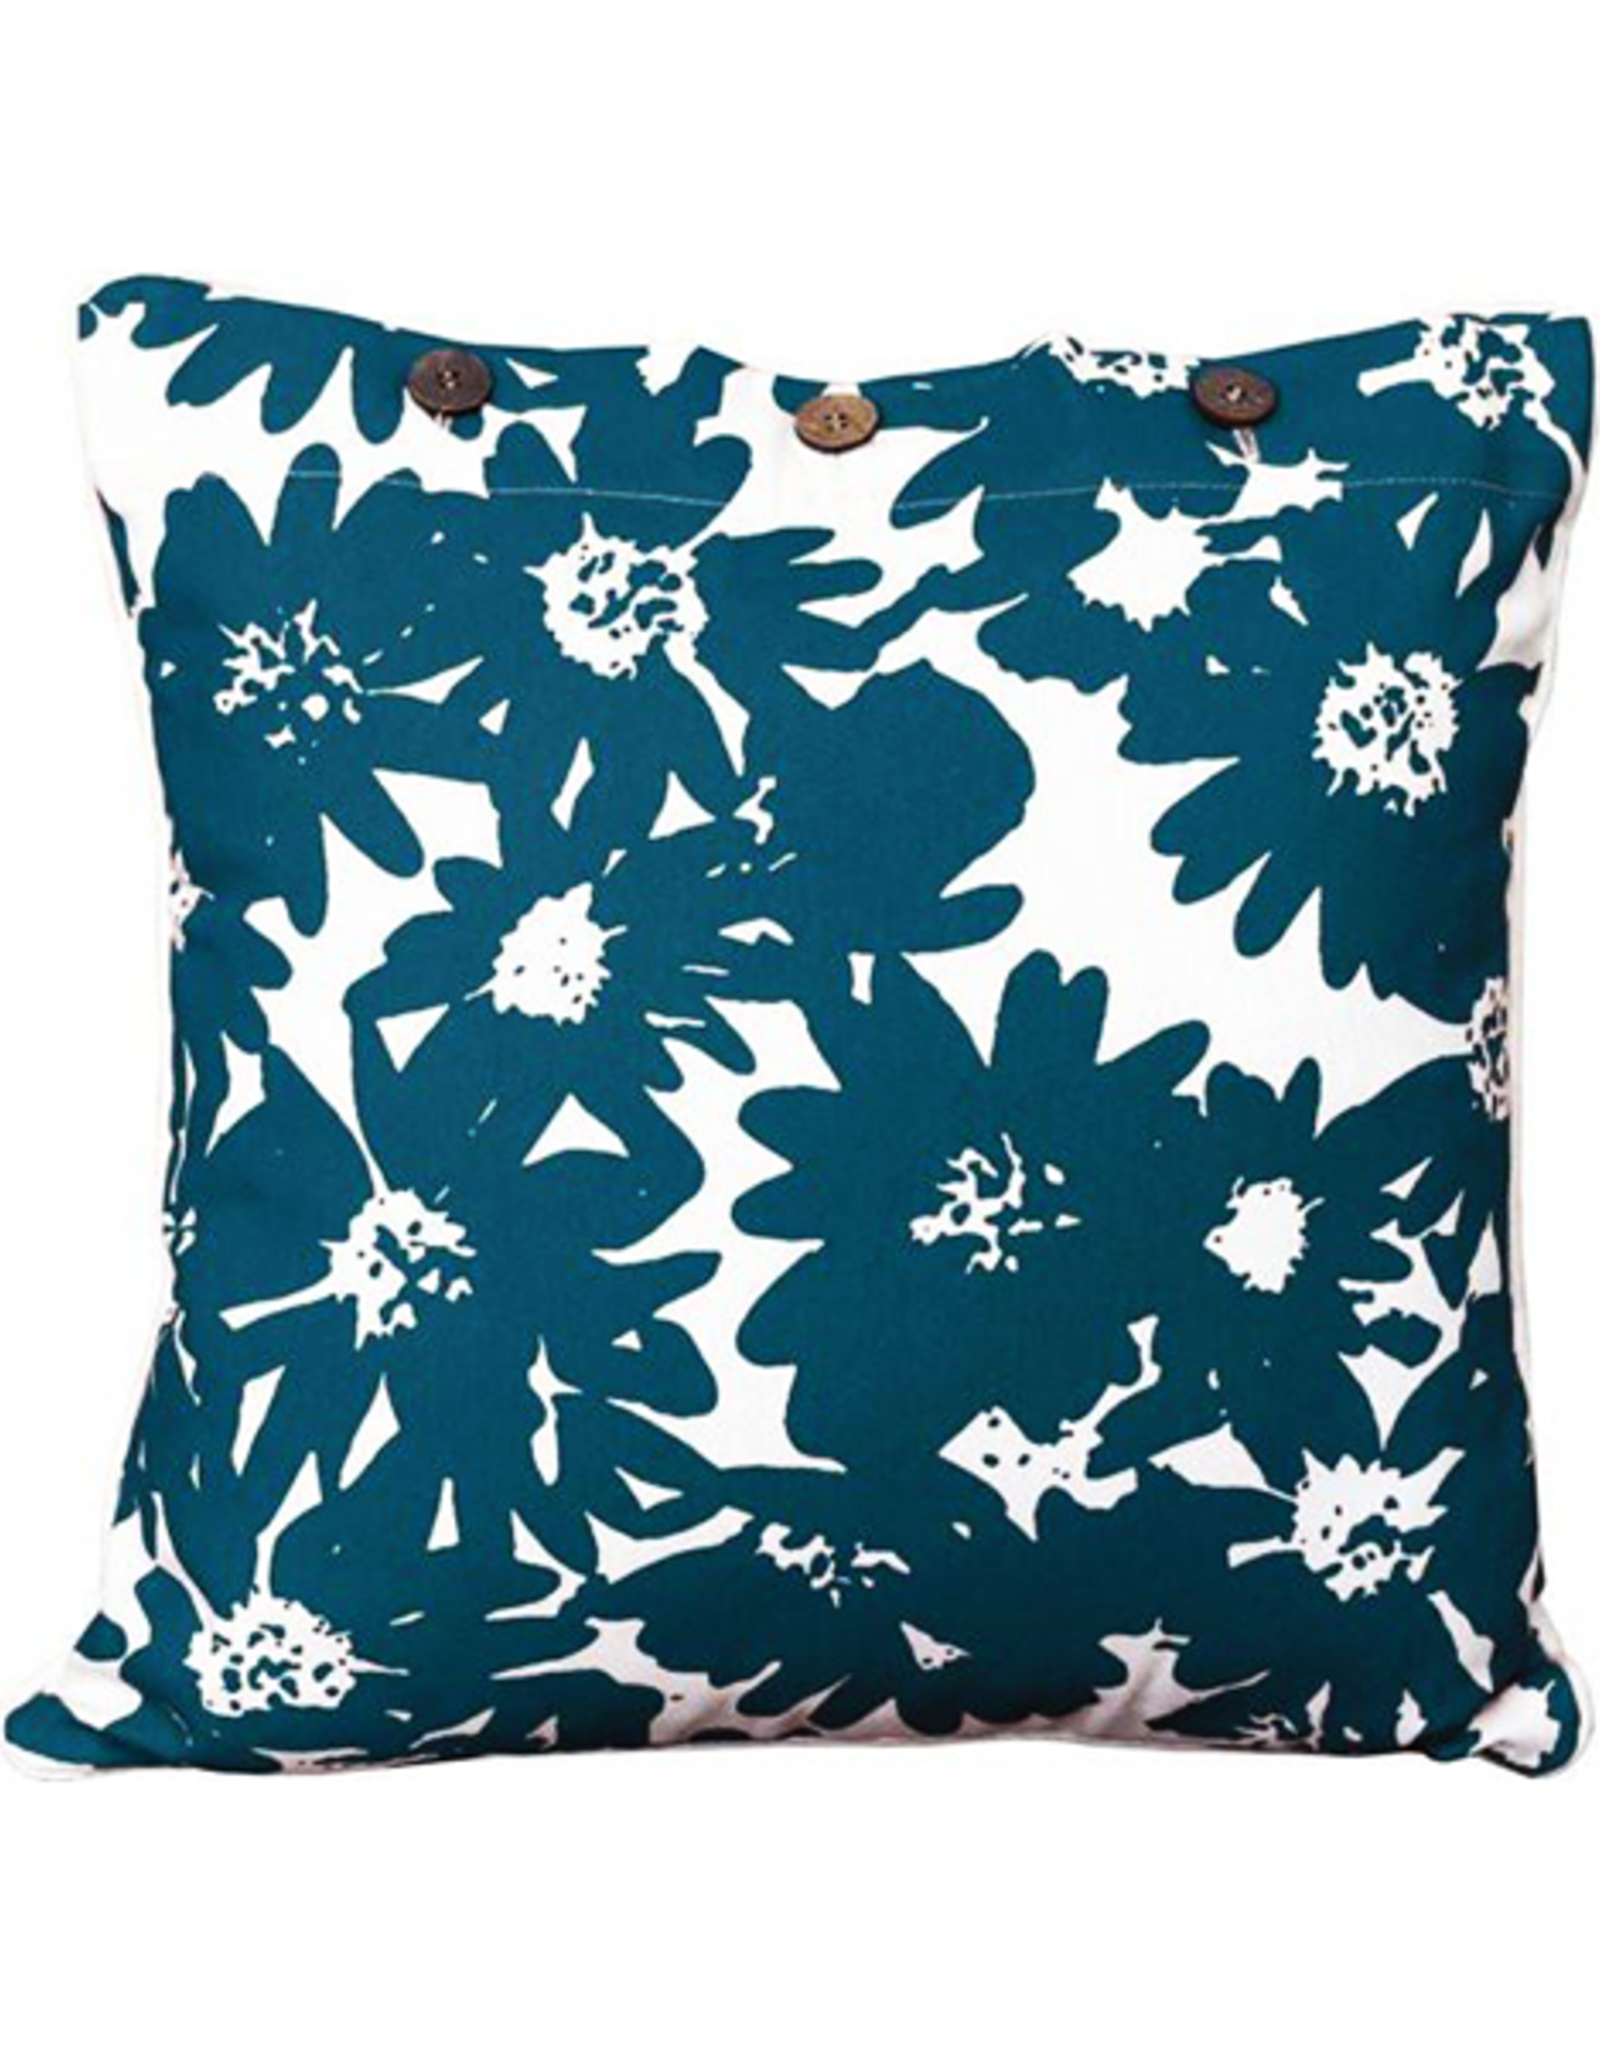 Craft Studio Martini Teal COVER ONLY 40x40cm